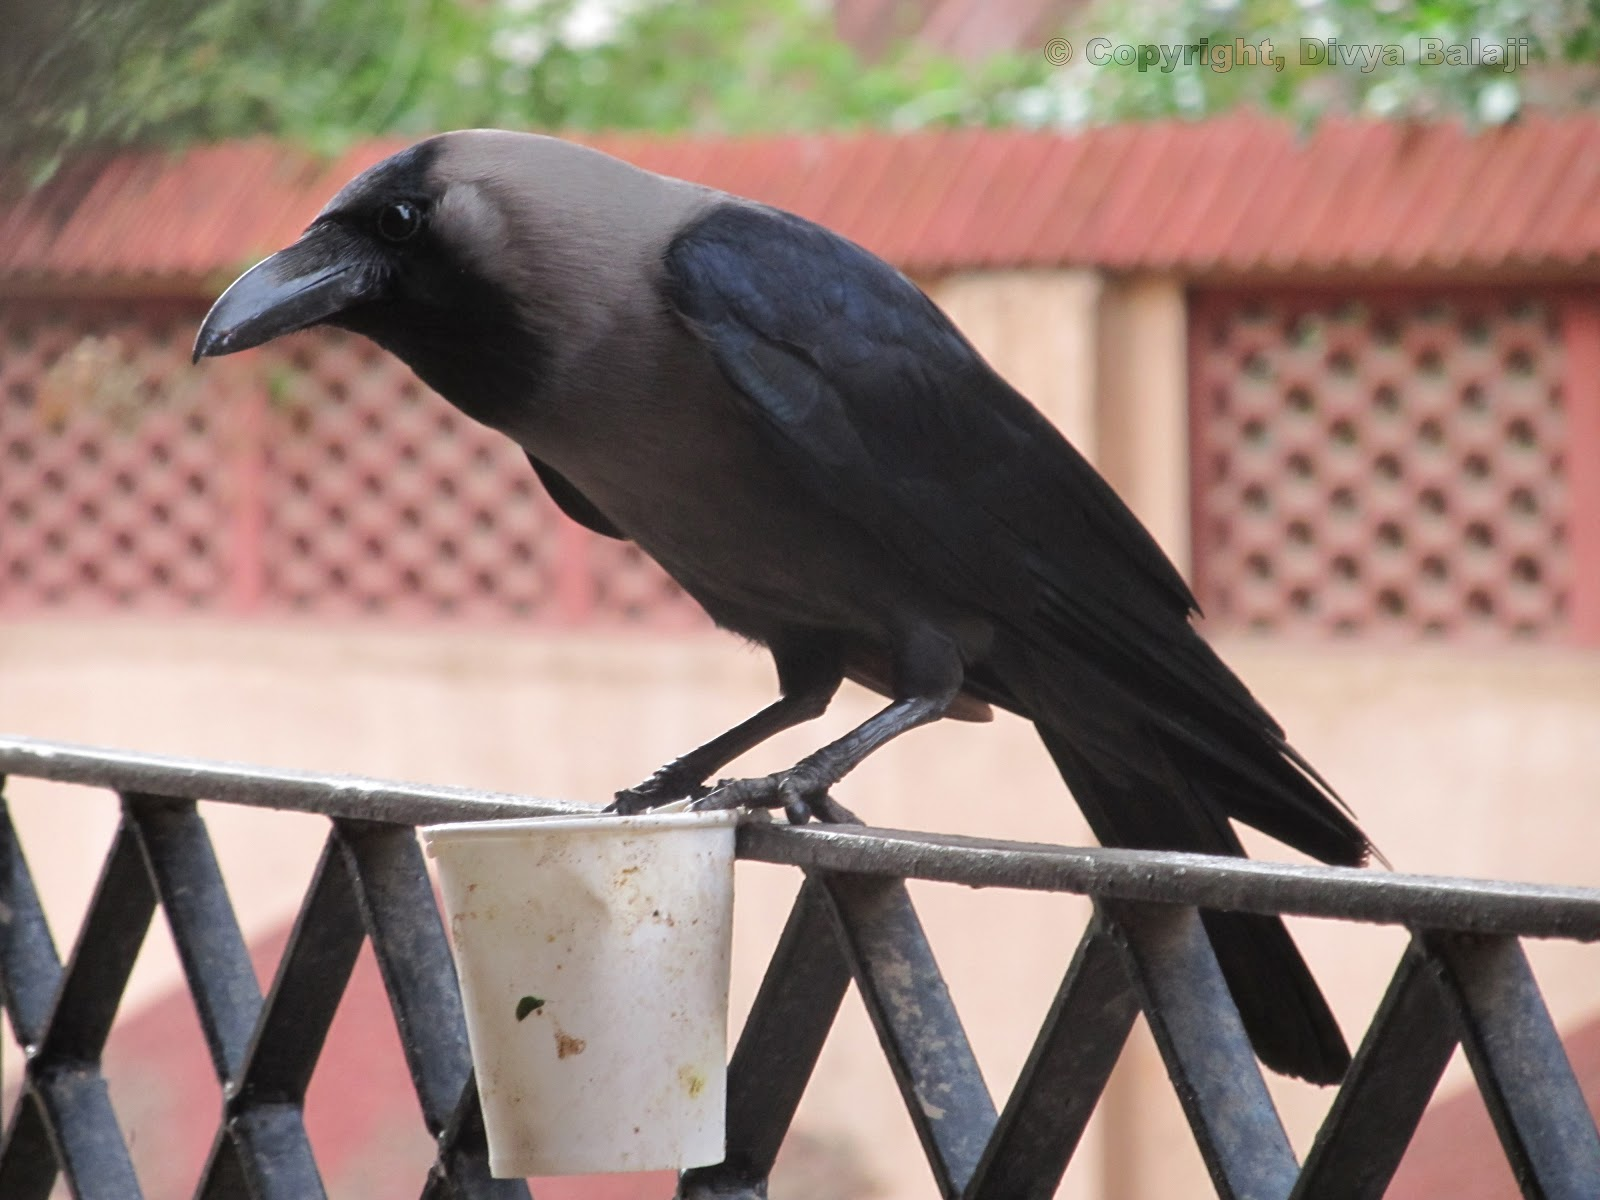 Crow holding cup in its claws